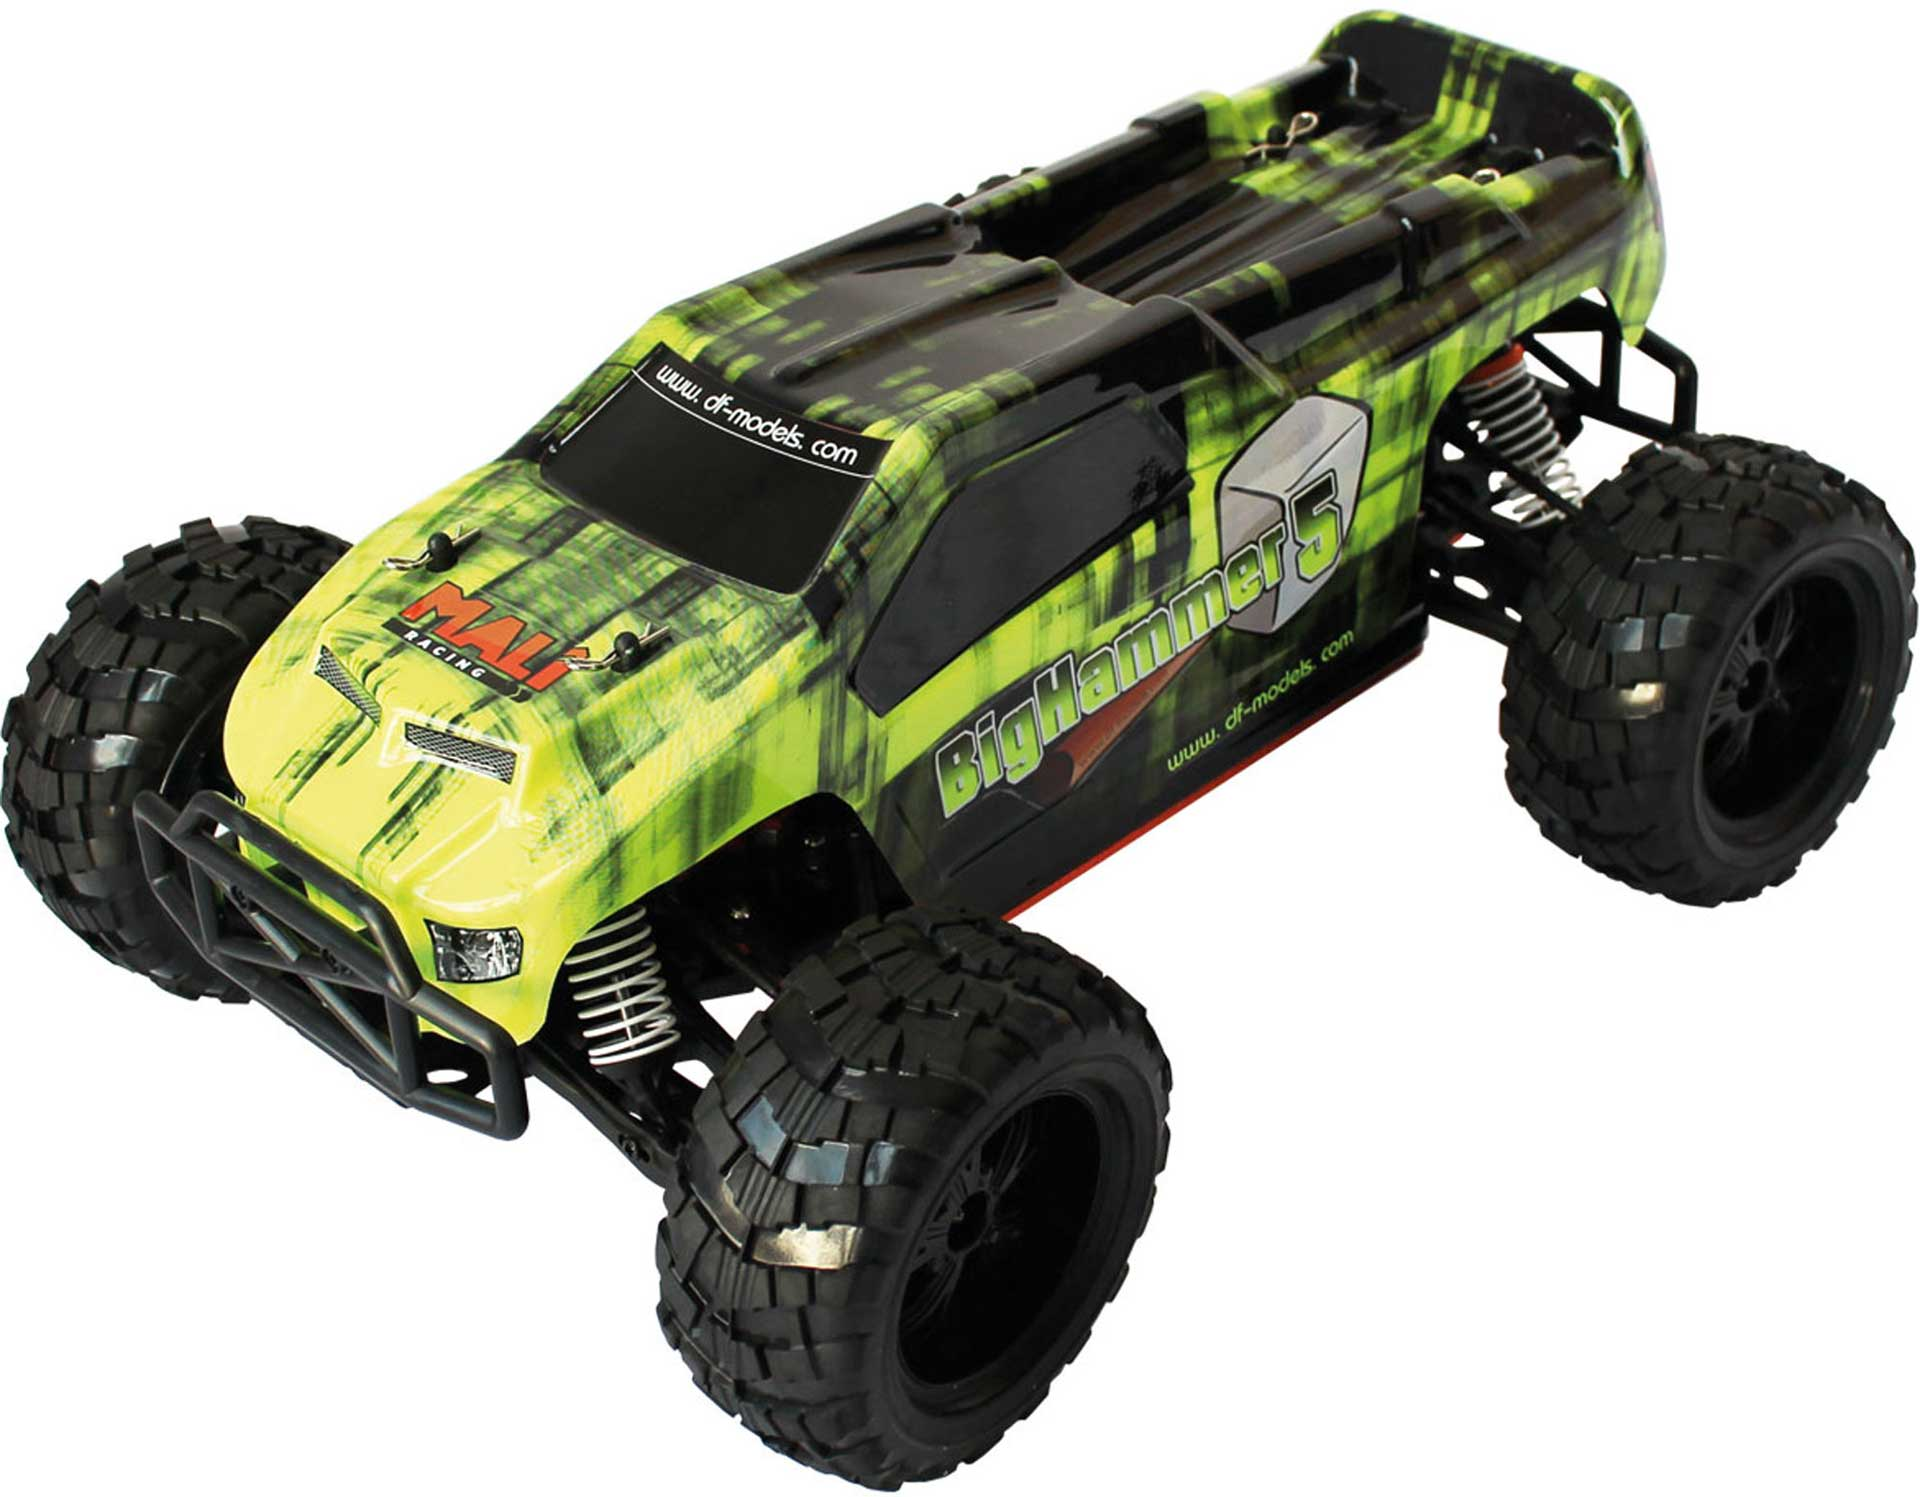 DRIVE & FLY MODELS BIGHAMMER 5 1/10XL RTR BRUSHED 4WD